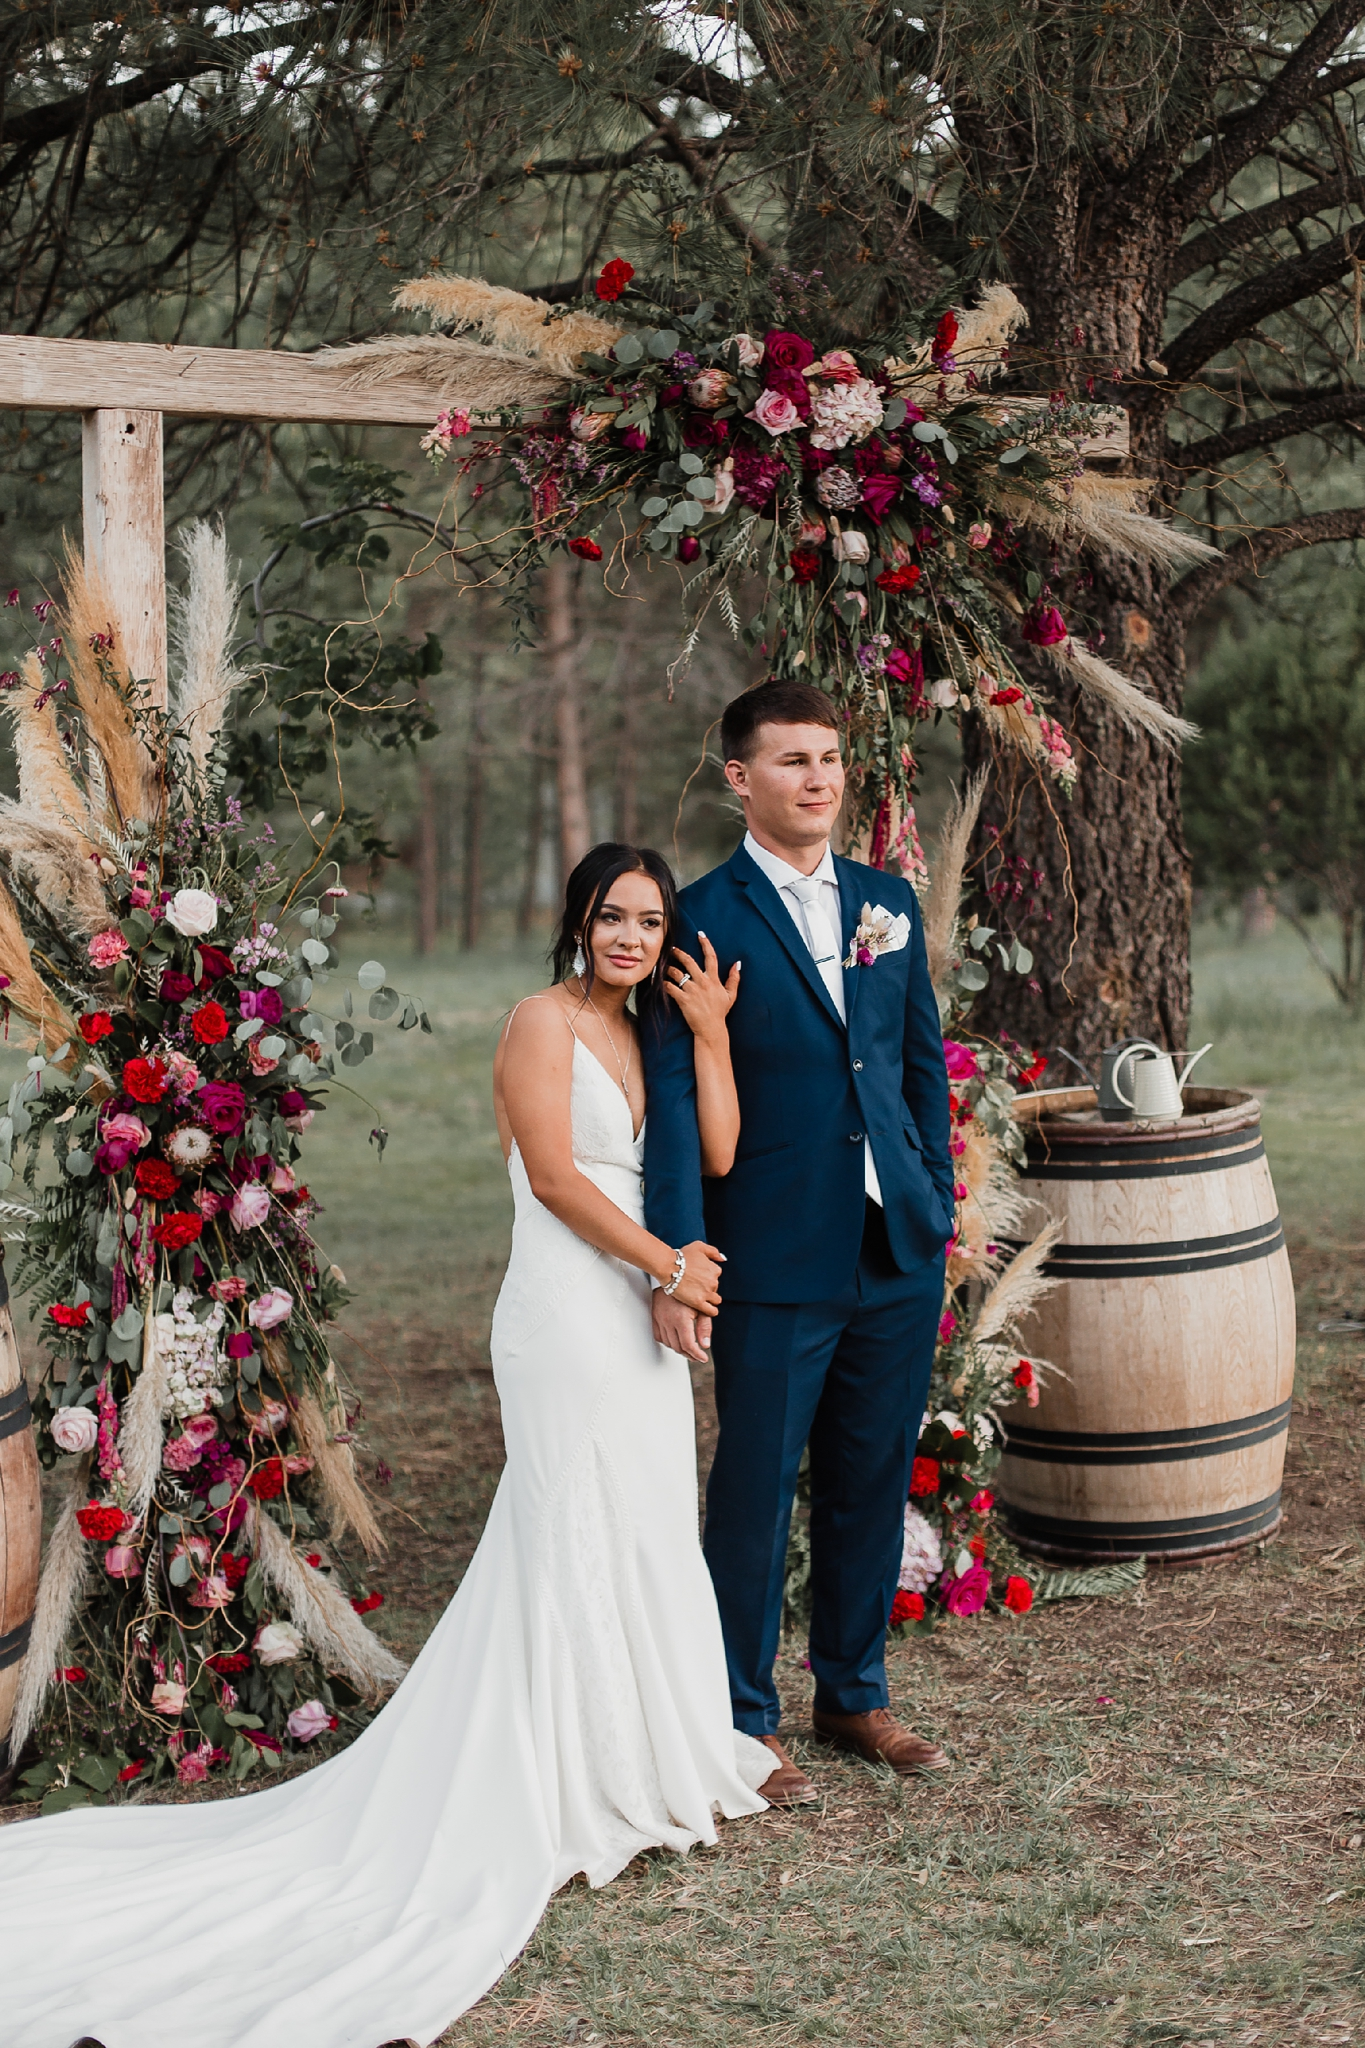 Alicia+lucia+photography+-+albuquerque+wedding+photographer+-+santa+fe+wedding+photography+-+new+mexico+wedding+photographer+-+new+mexico+wedding+-+new+mexico+wedding+-+barn+wedding+-+enchanted+vine+barn+wedding+-+ruidoso+wedding_0142.jpg